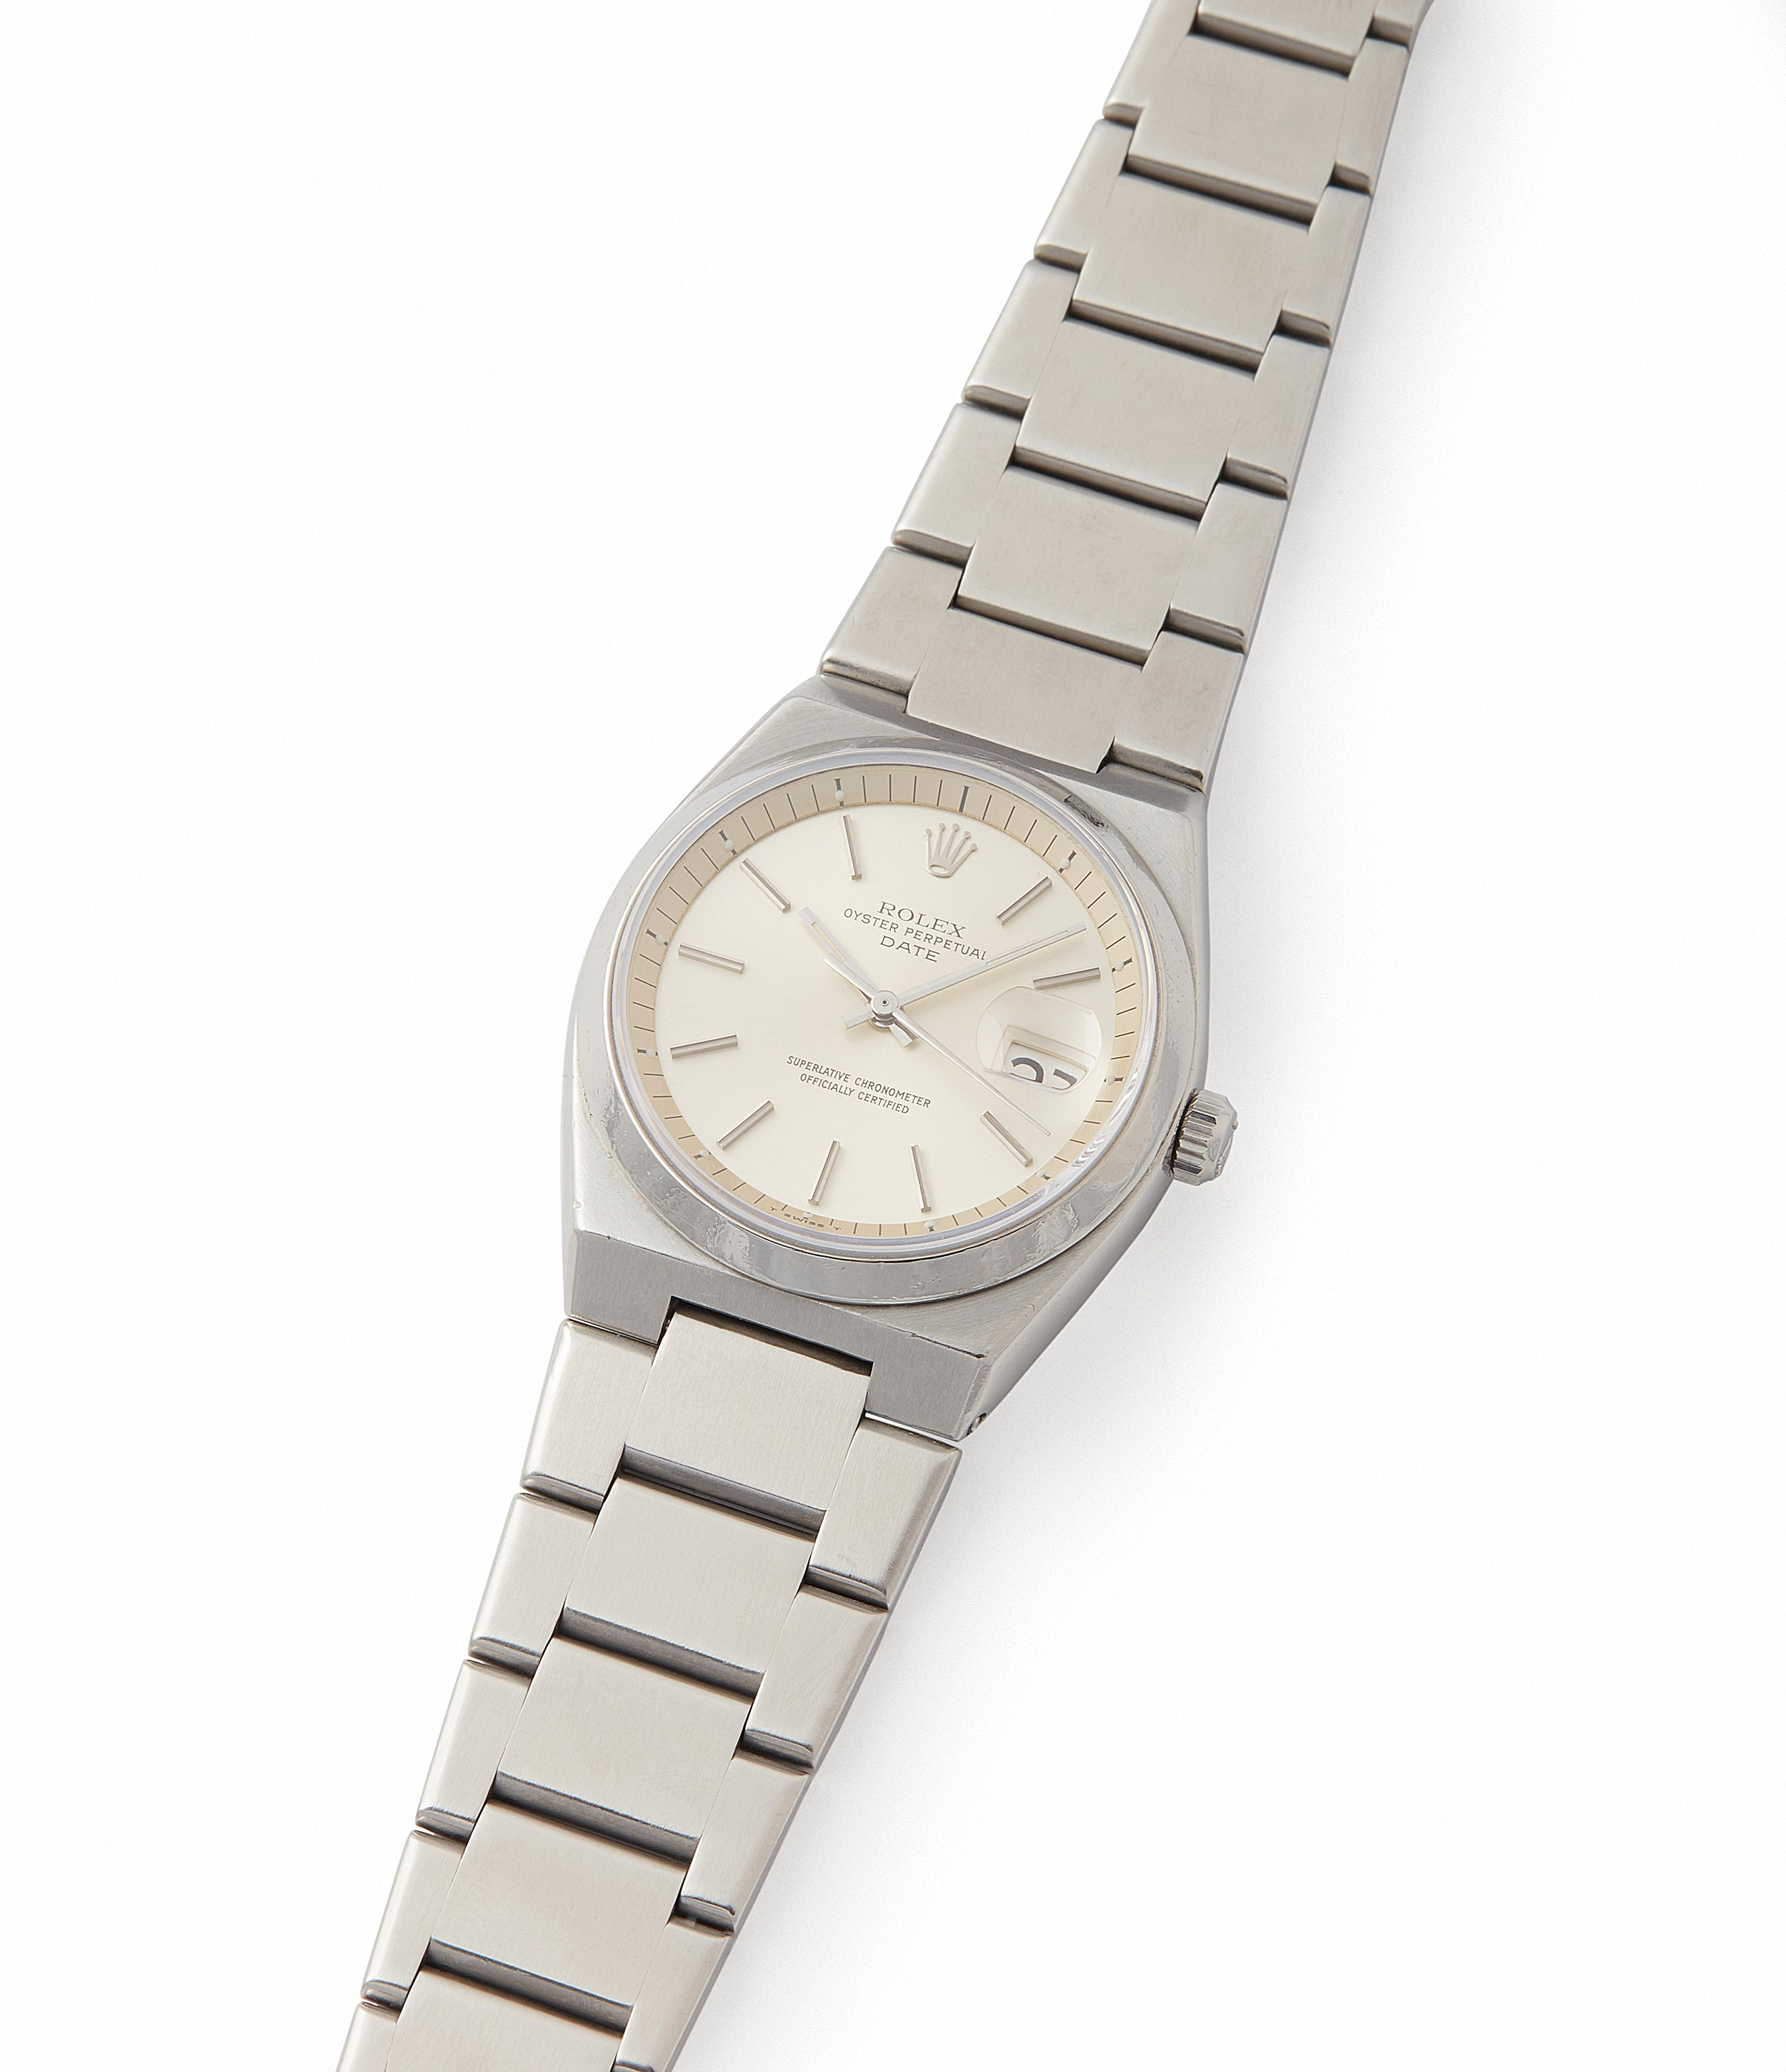 shop vintage Rolex Oyster Perpetual 1530 steel sport watch with papers for sale online at A Collected Man London UK specialist of rare watches